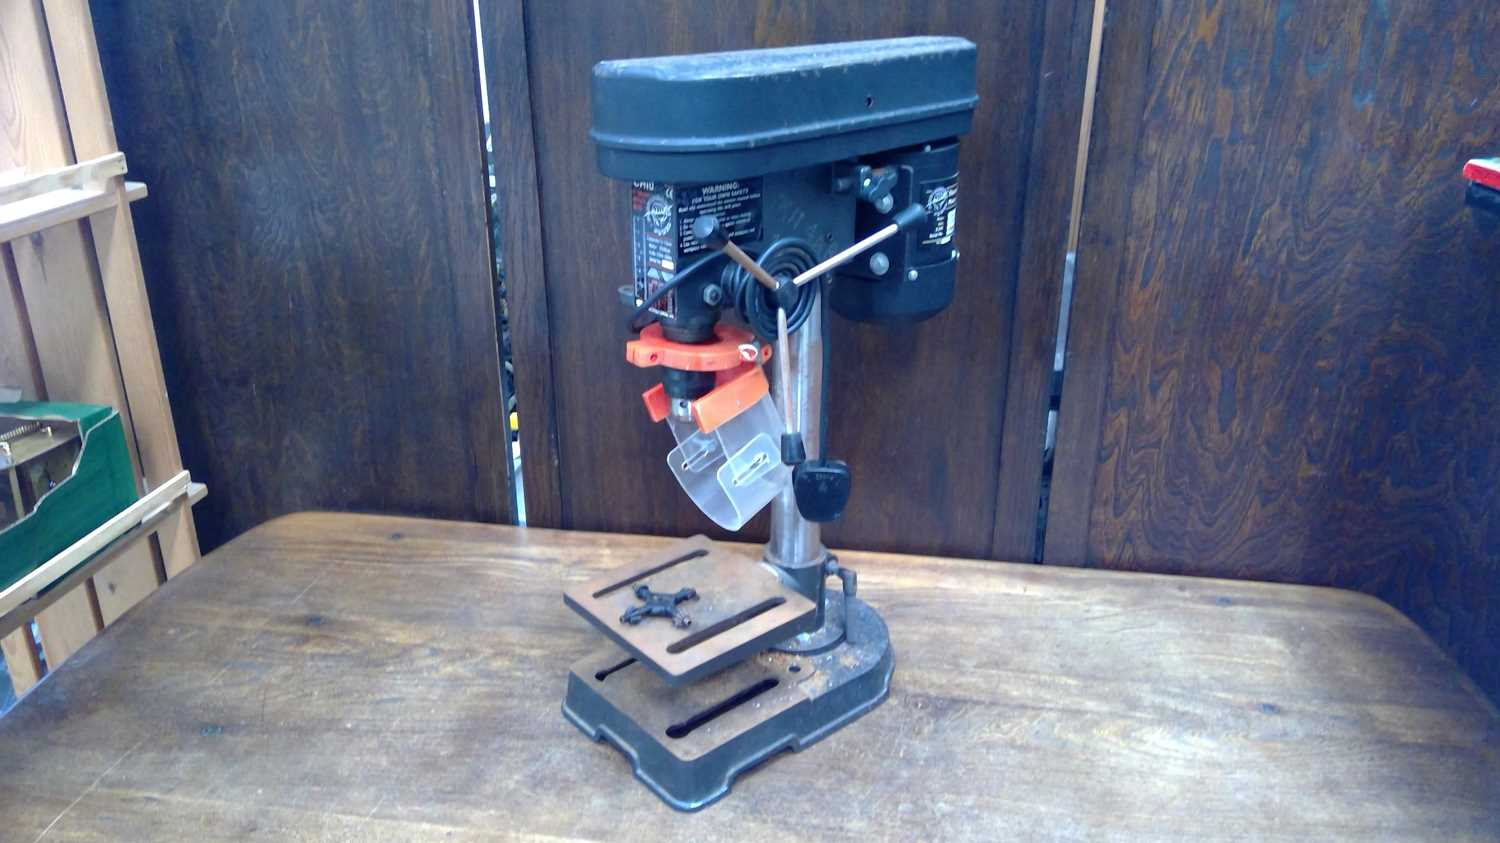 Lot 14 - CHIO, 5 speed Power drill